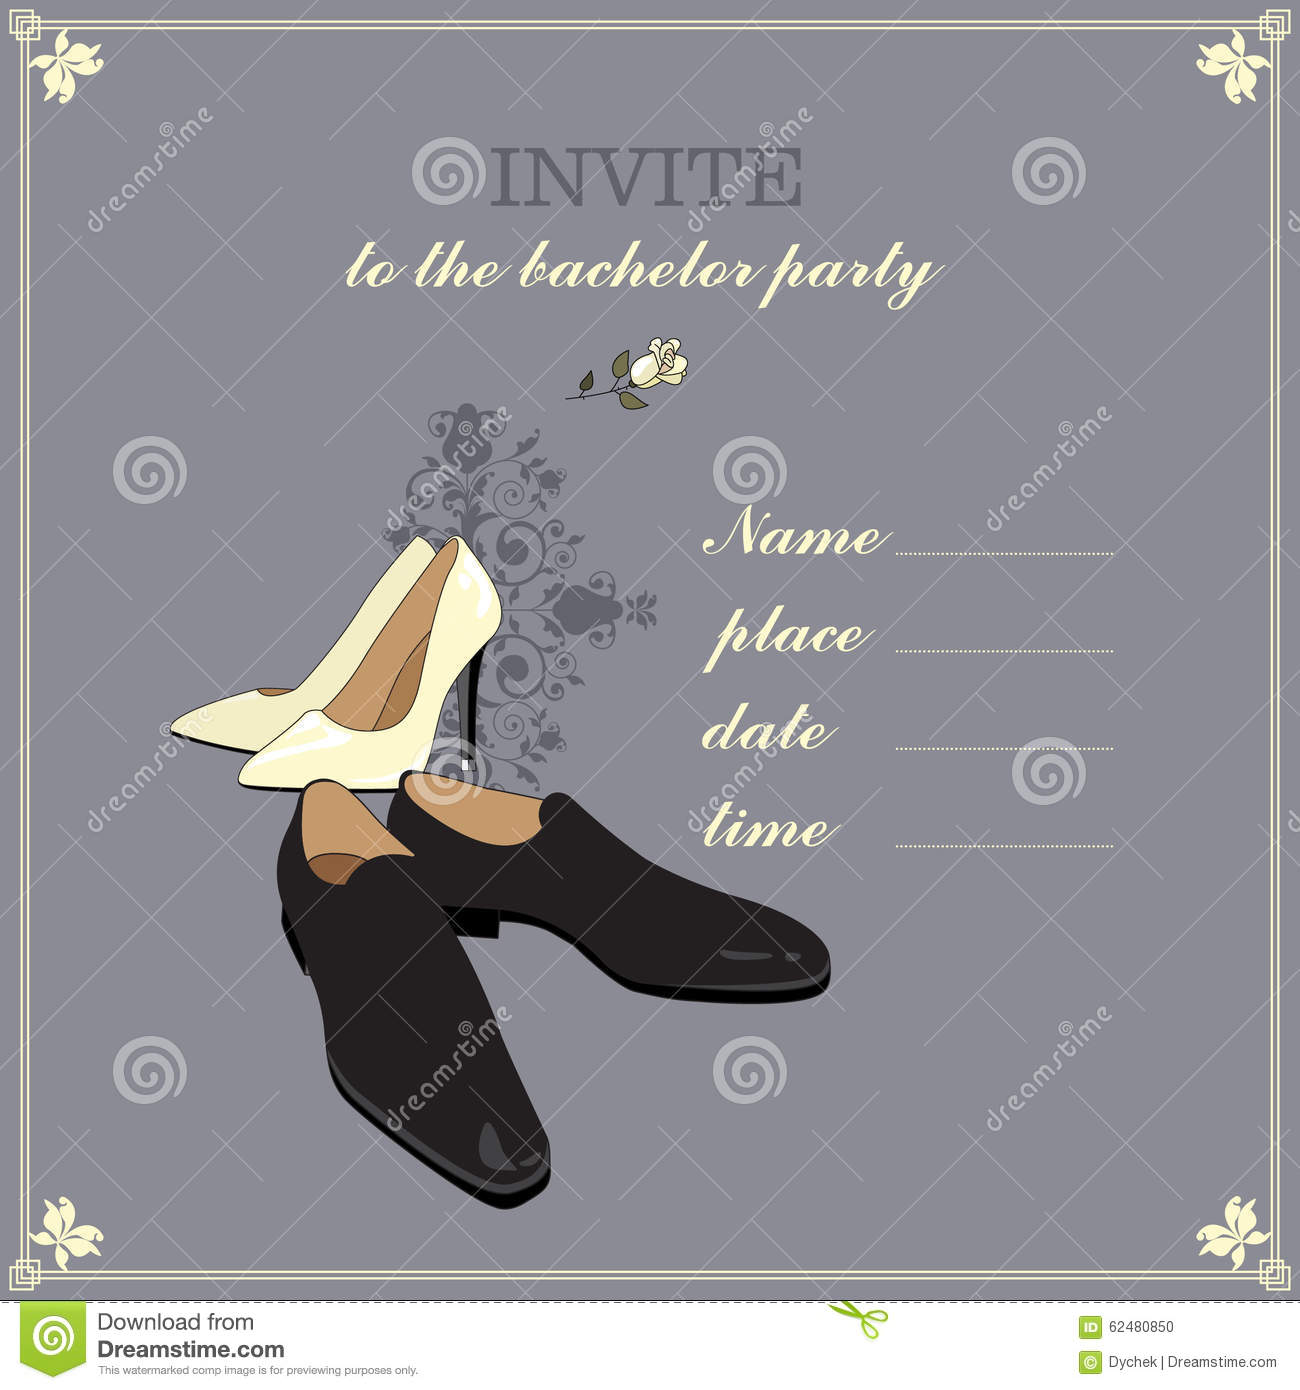 bachelor party invitation cards design - Picture Ideas References